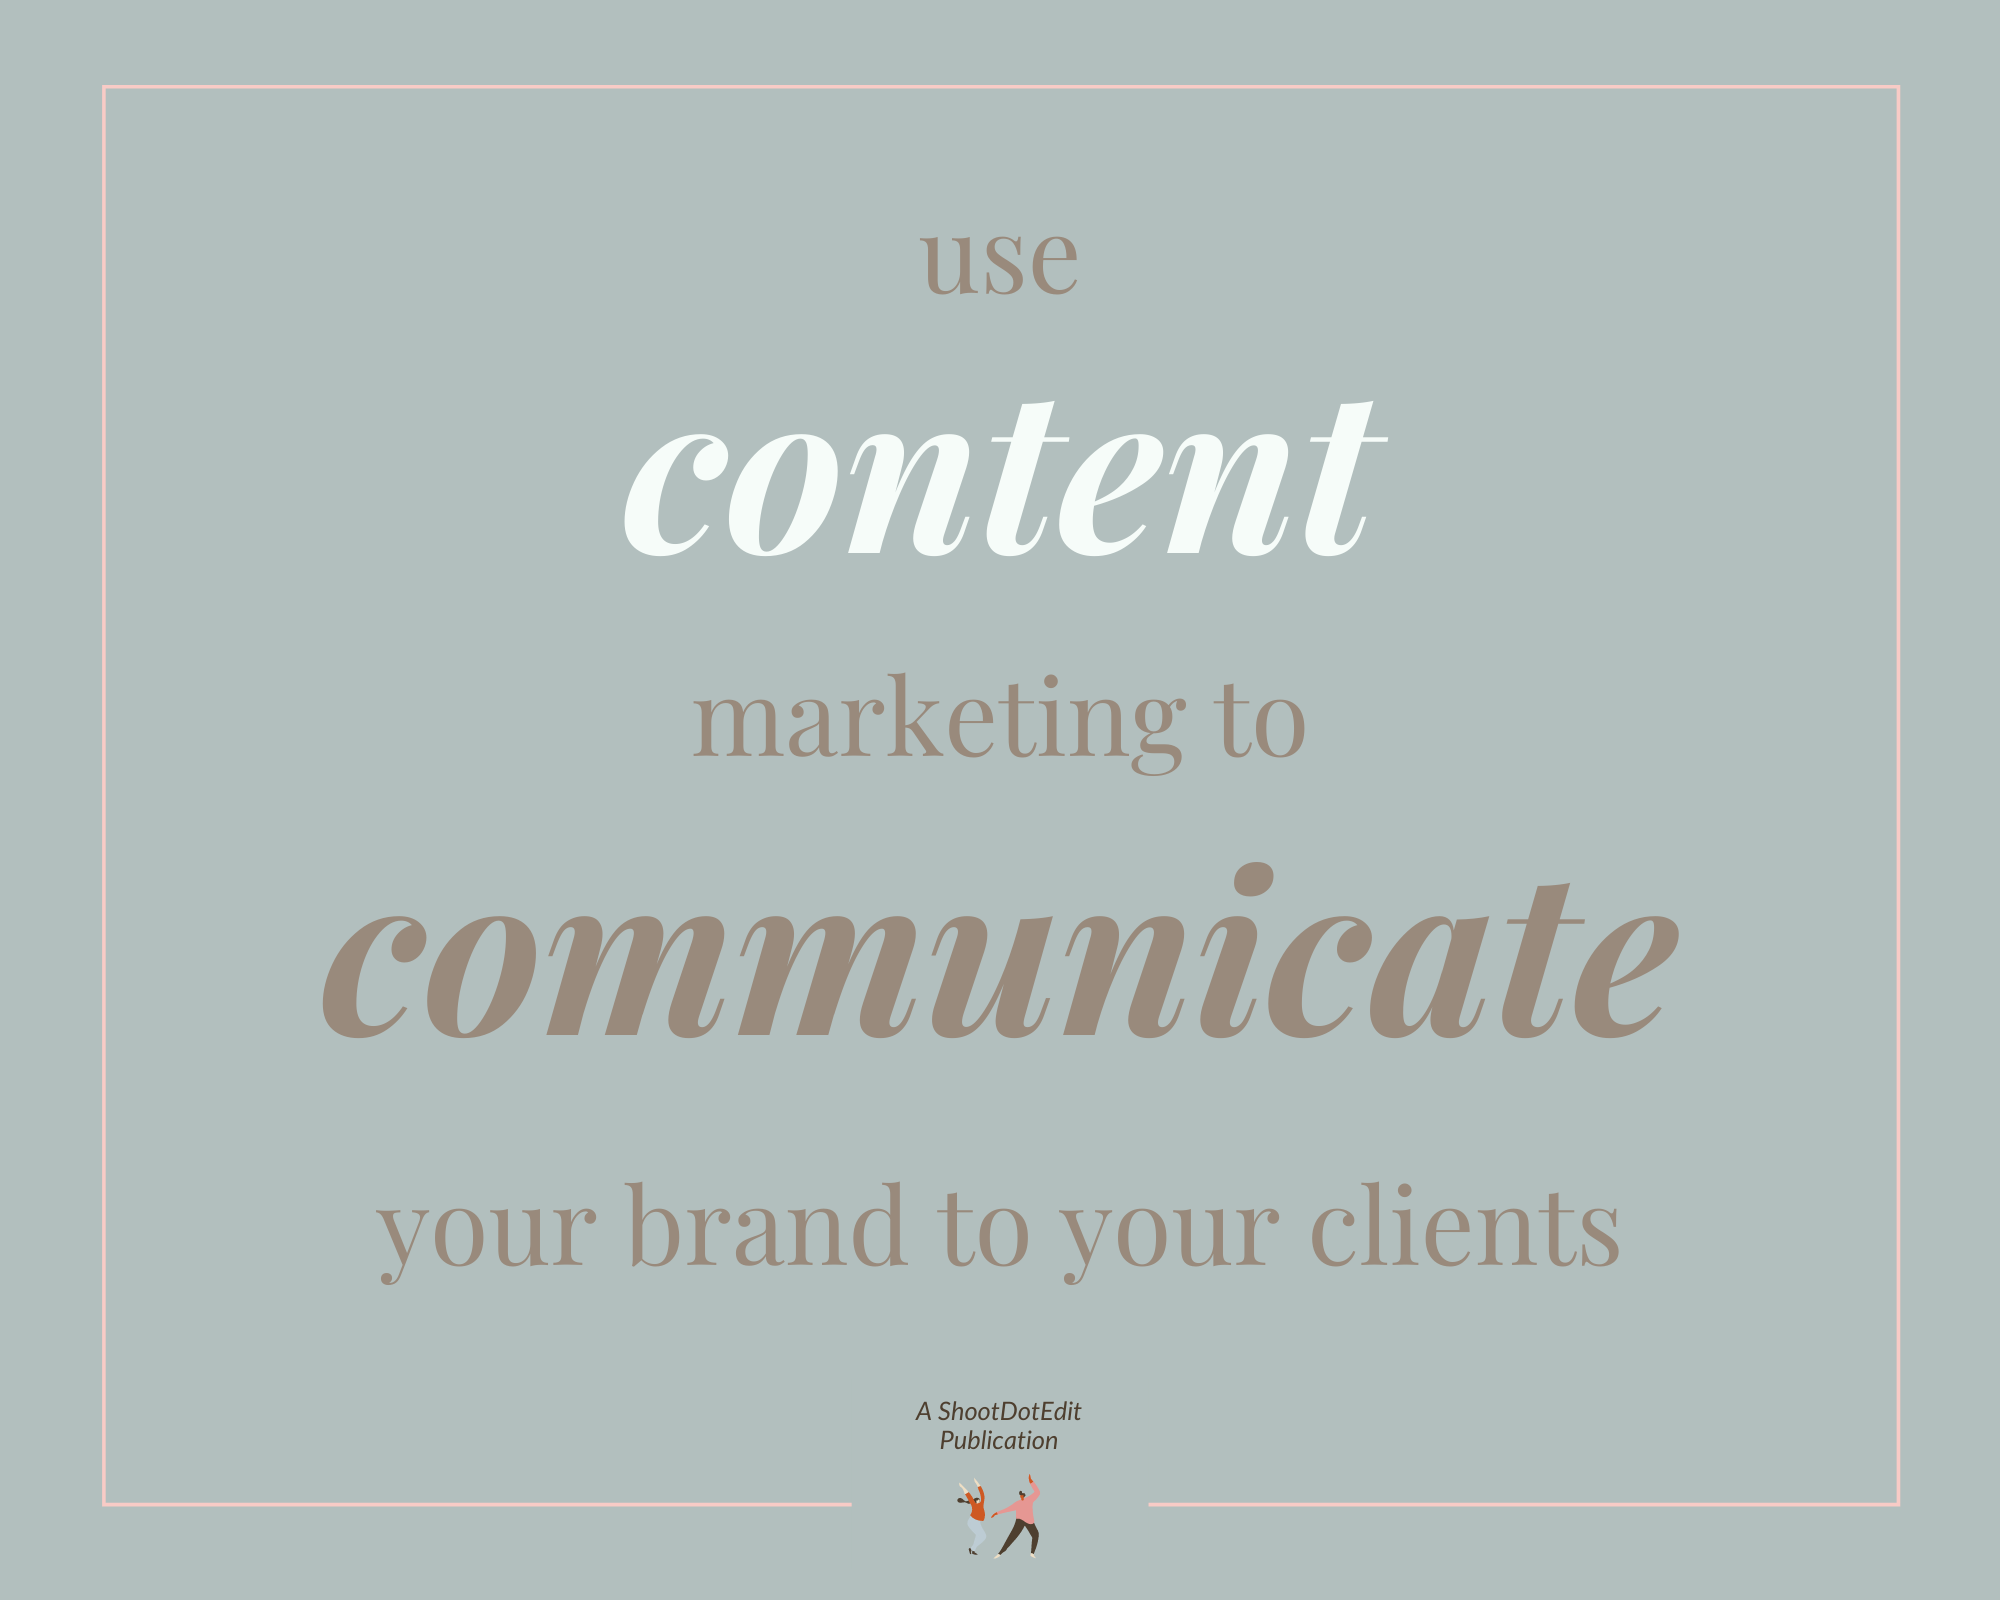 Infographic stating use content marketing to communicate your brand to your clients